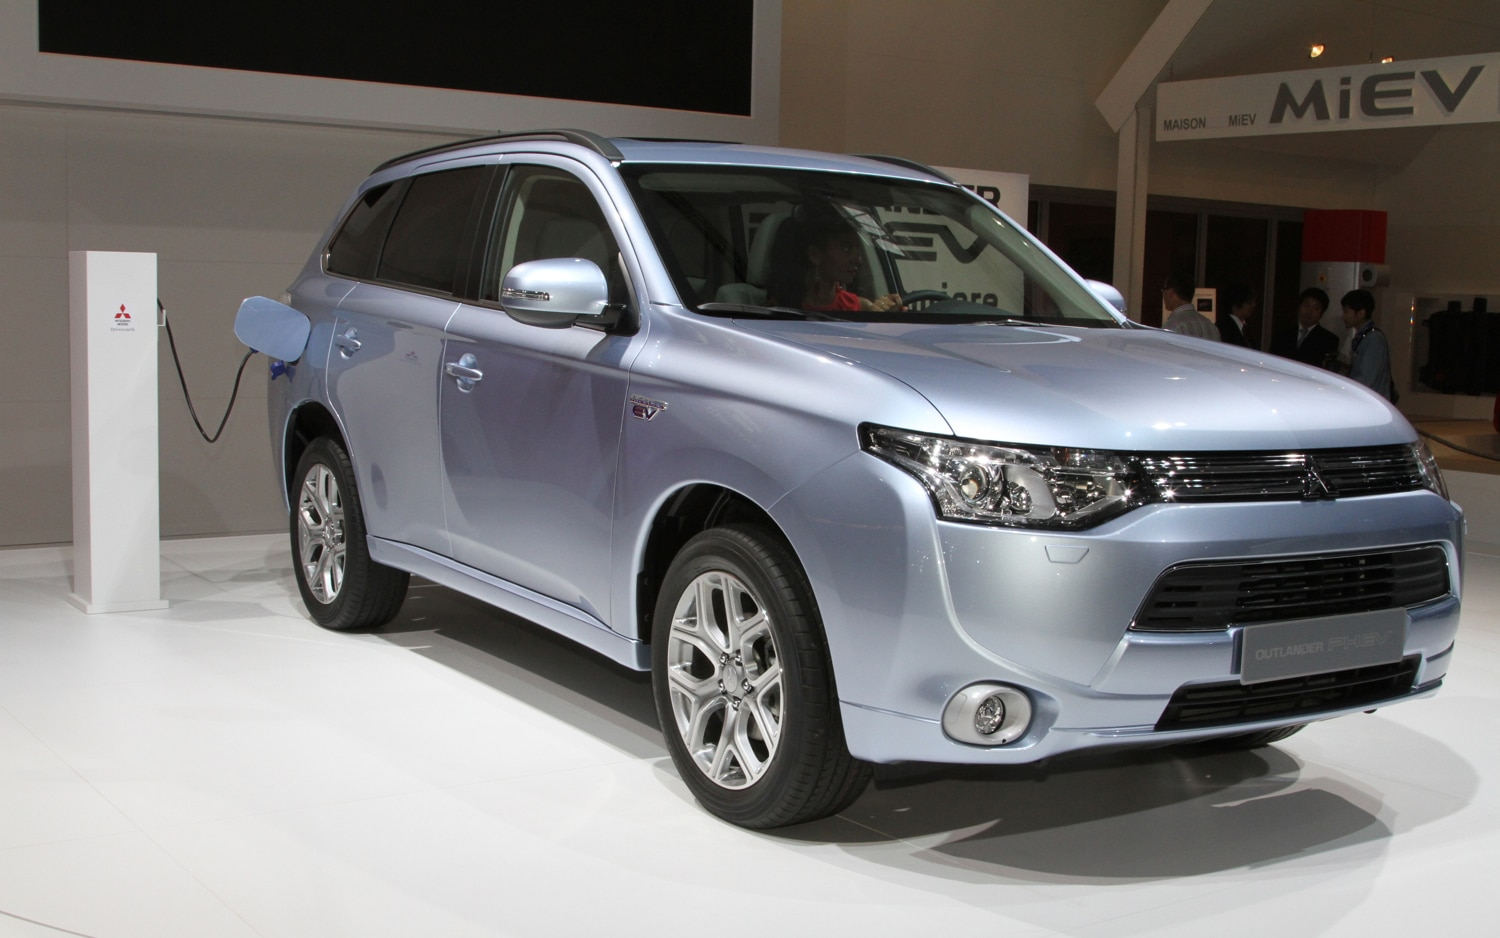 2013 Mitsubishi Outlander PHEV Front Three Quarter Plugged In1